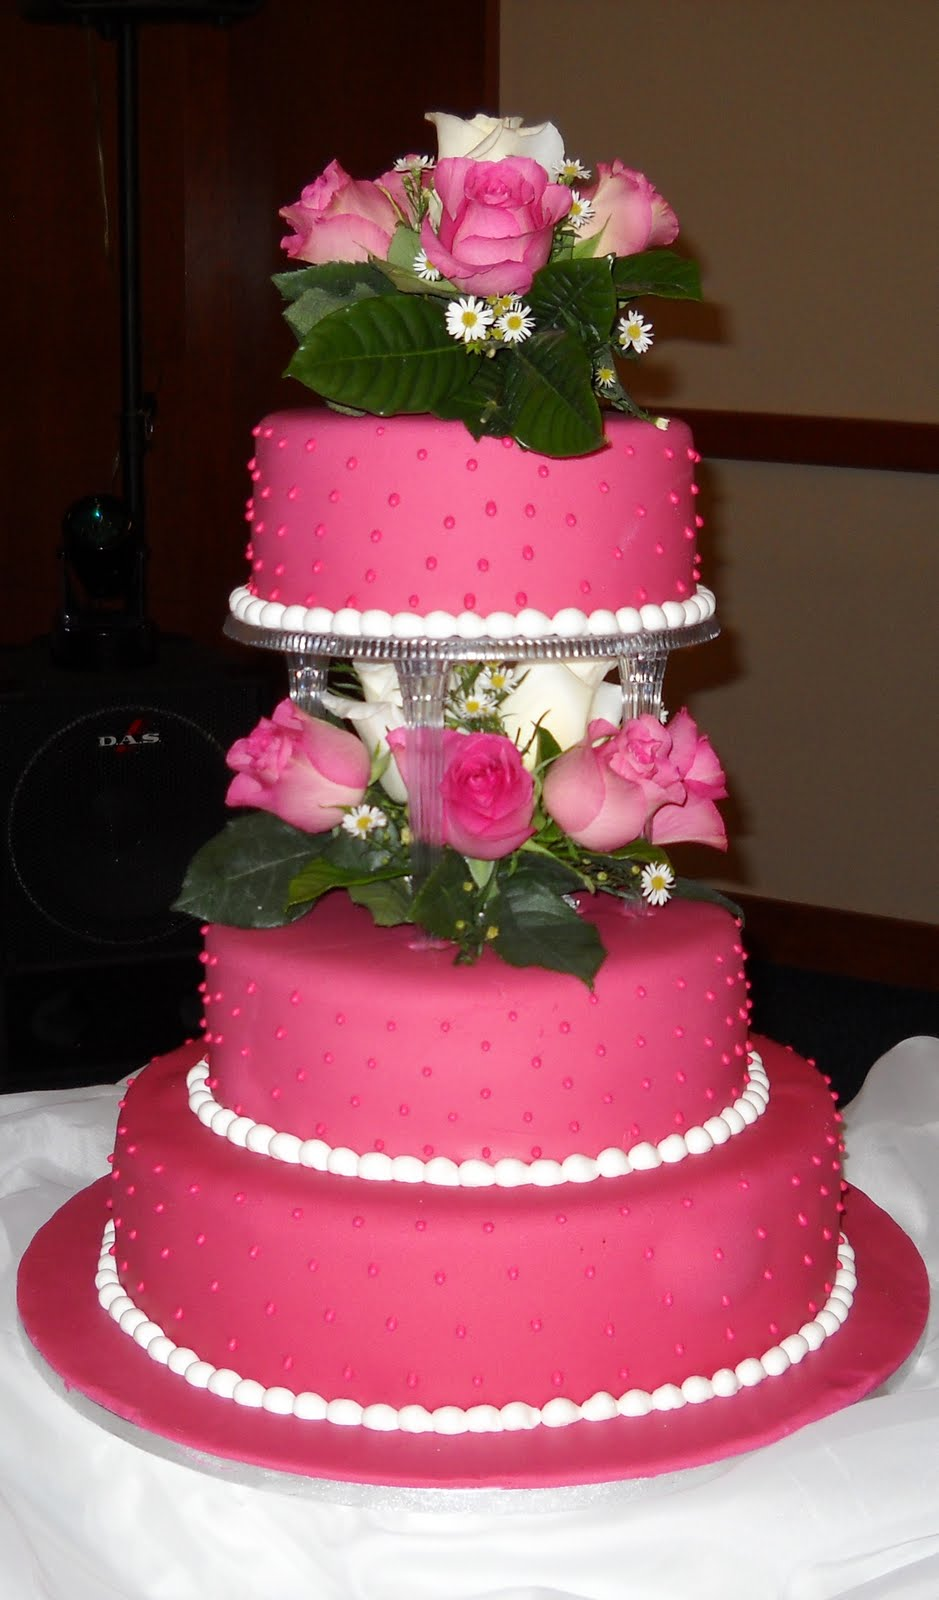 Cake Designs For Debut : Jocelyn s Wedding Cakes and More....: Nicole s Debut Cake